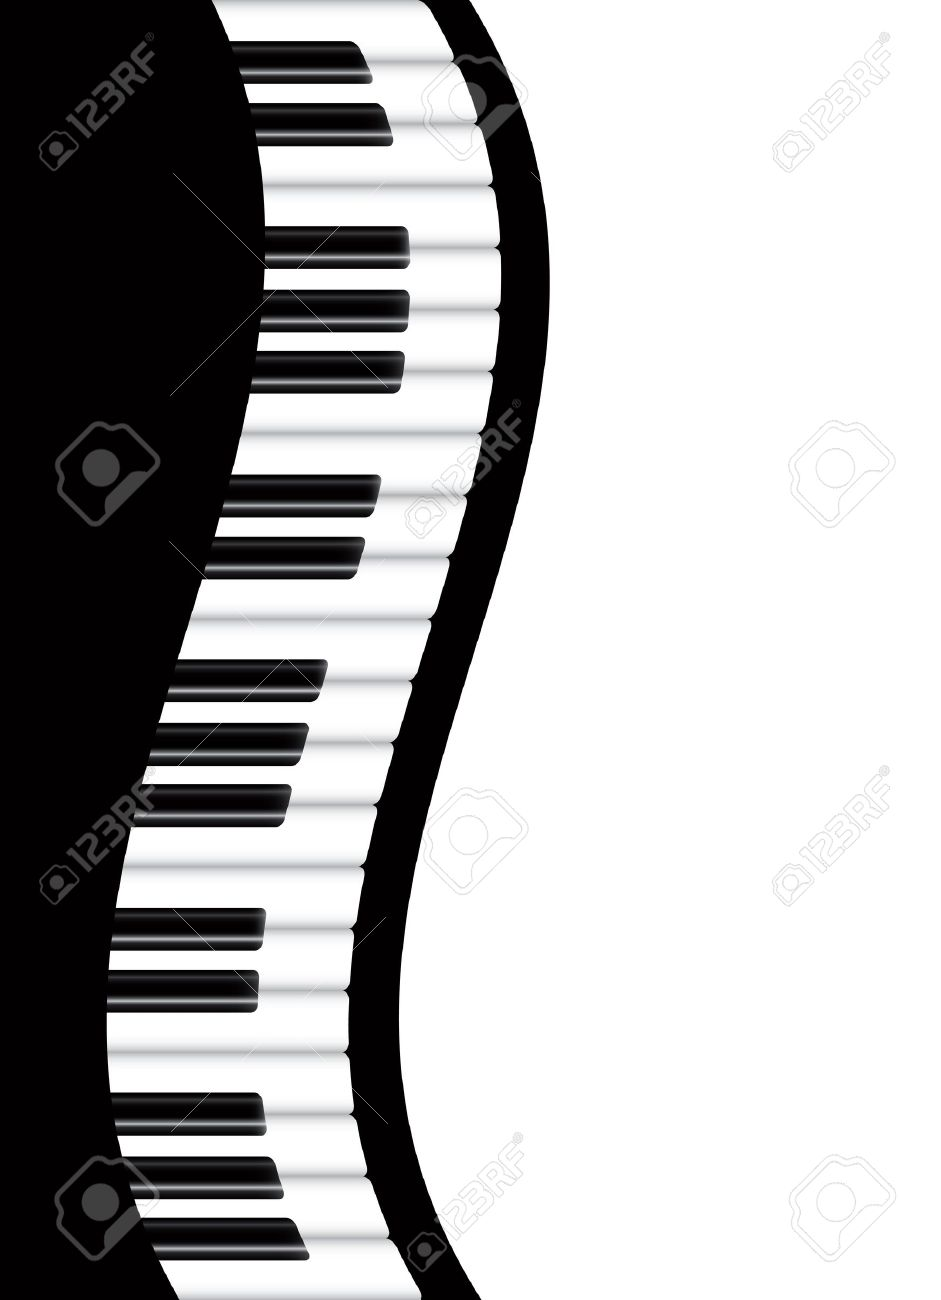 Piano Keyboards Wavy Border Background Illustration Stock Vector - 16459628